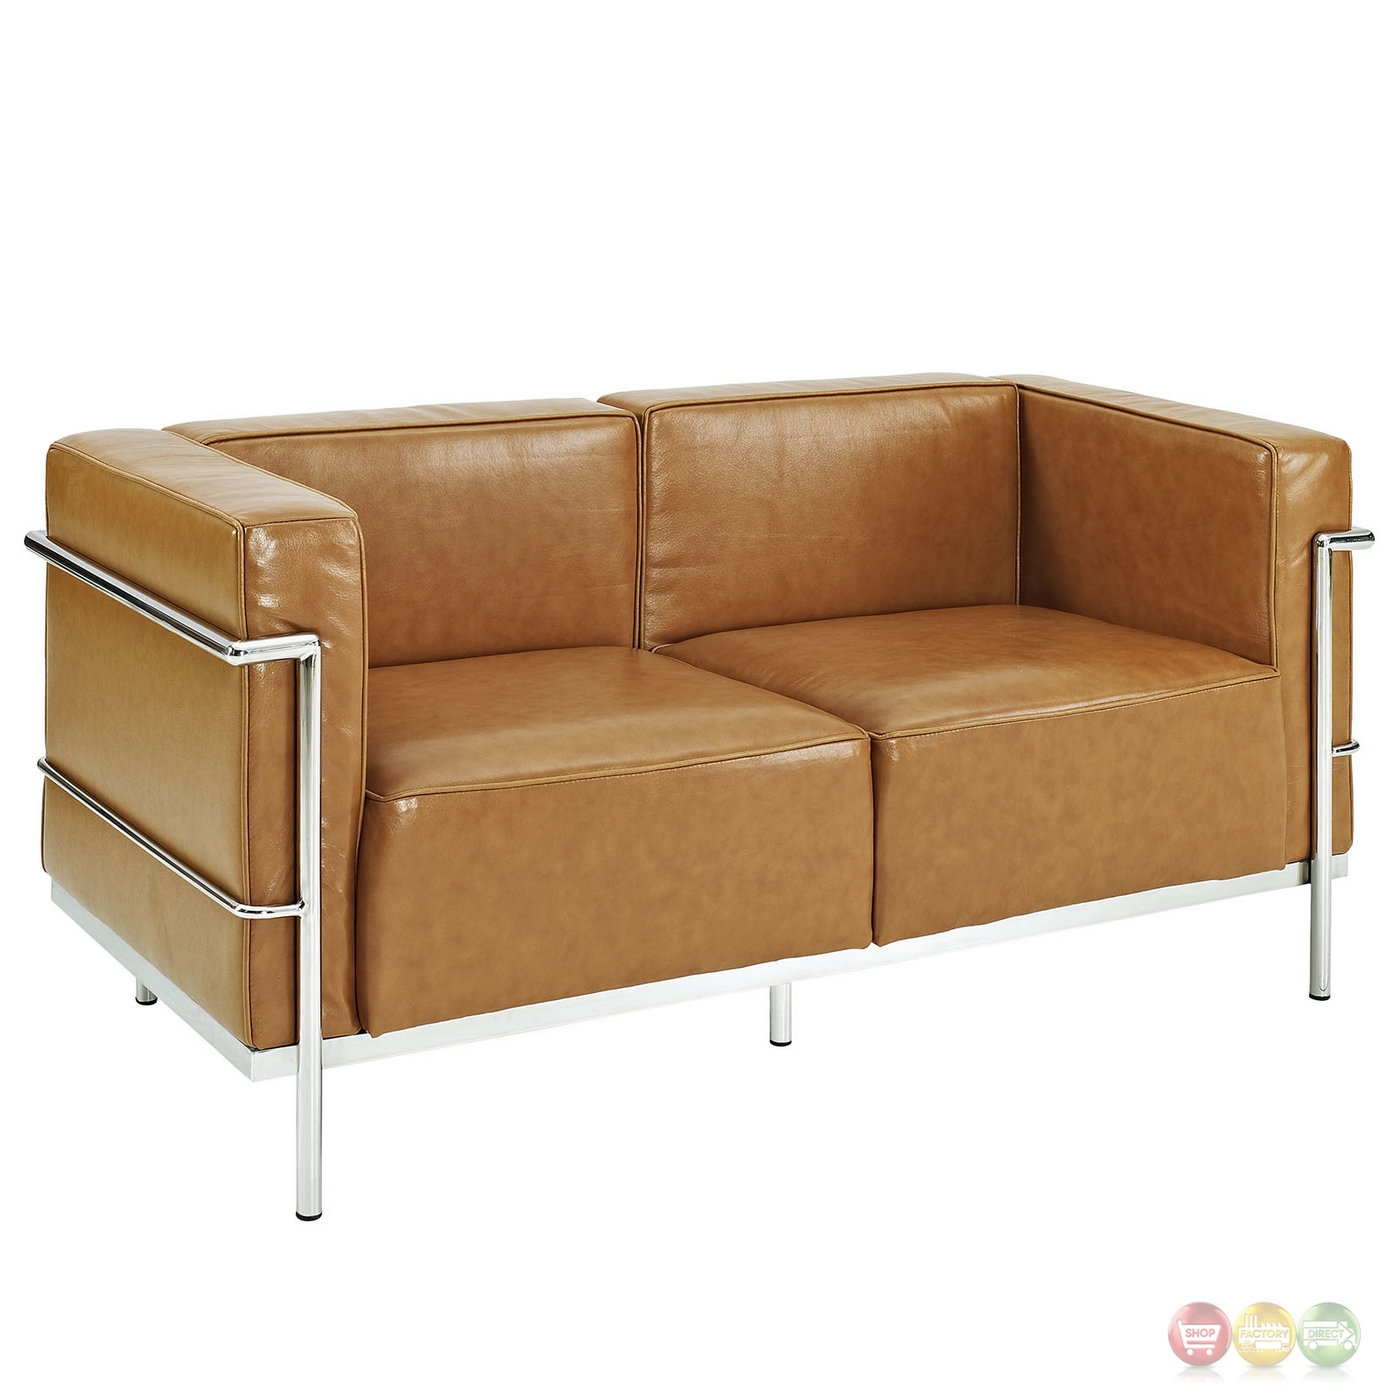 Charles Grande Modern Leather Loveseat With Steel Frame Tan